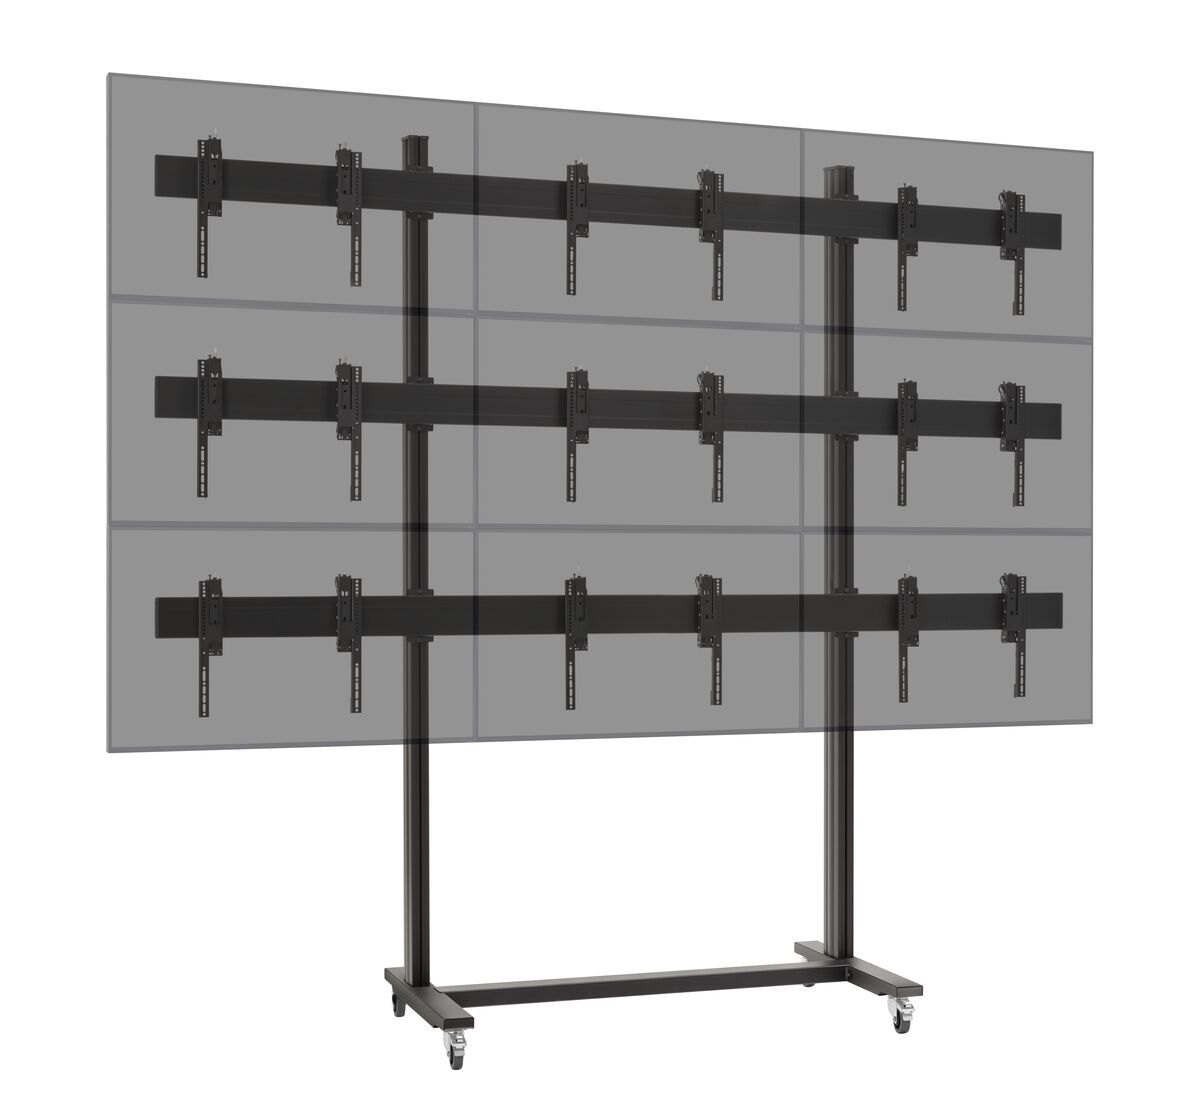 Vogel's PFT 8920 Videowall trolley frame - Application